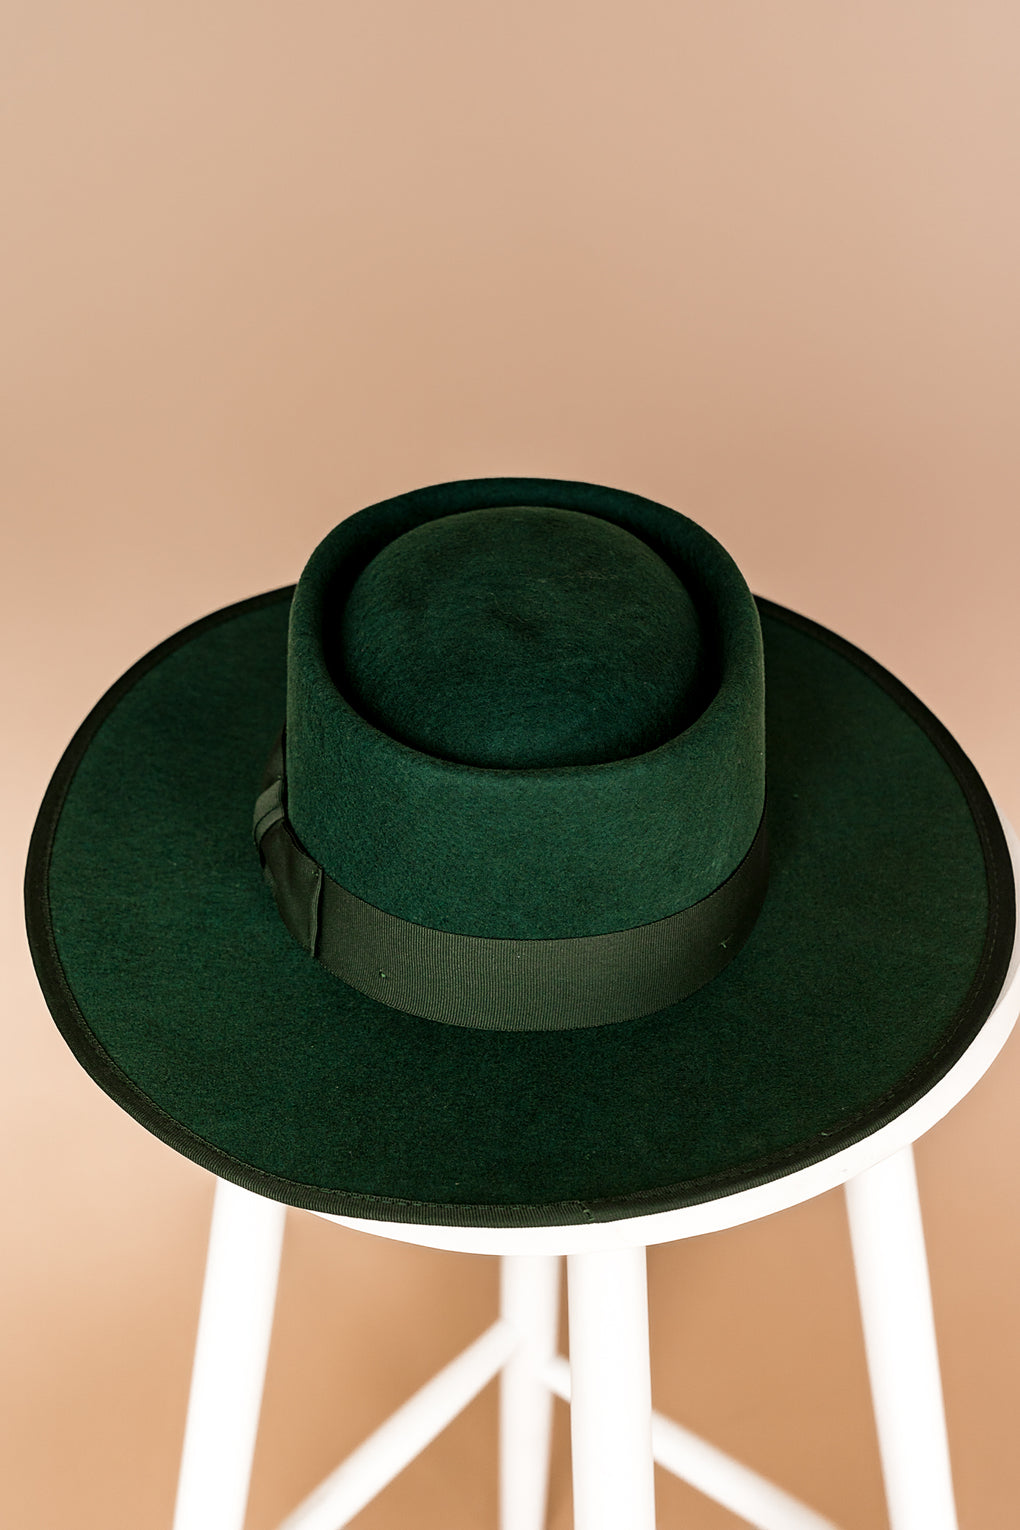 Lola Stiff Brim Hat in Emerald